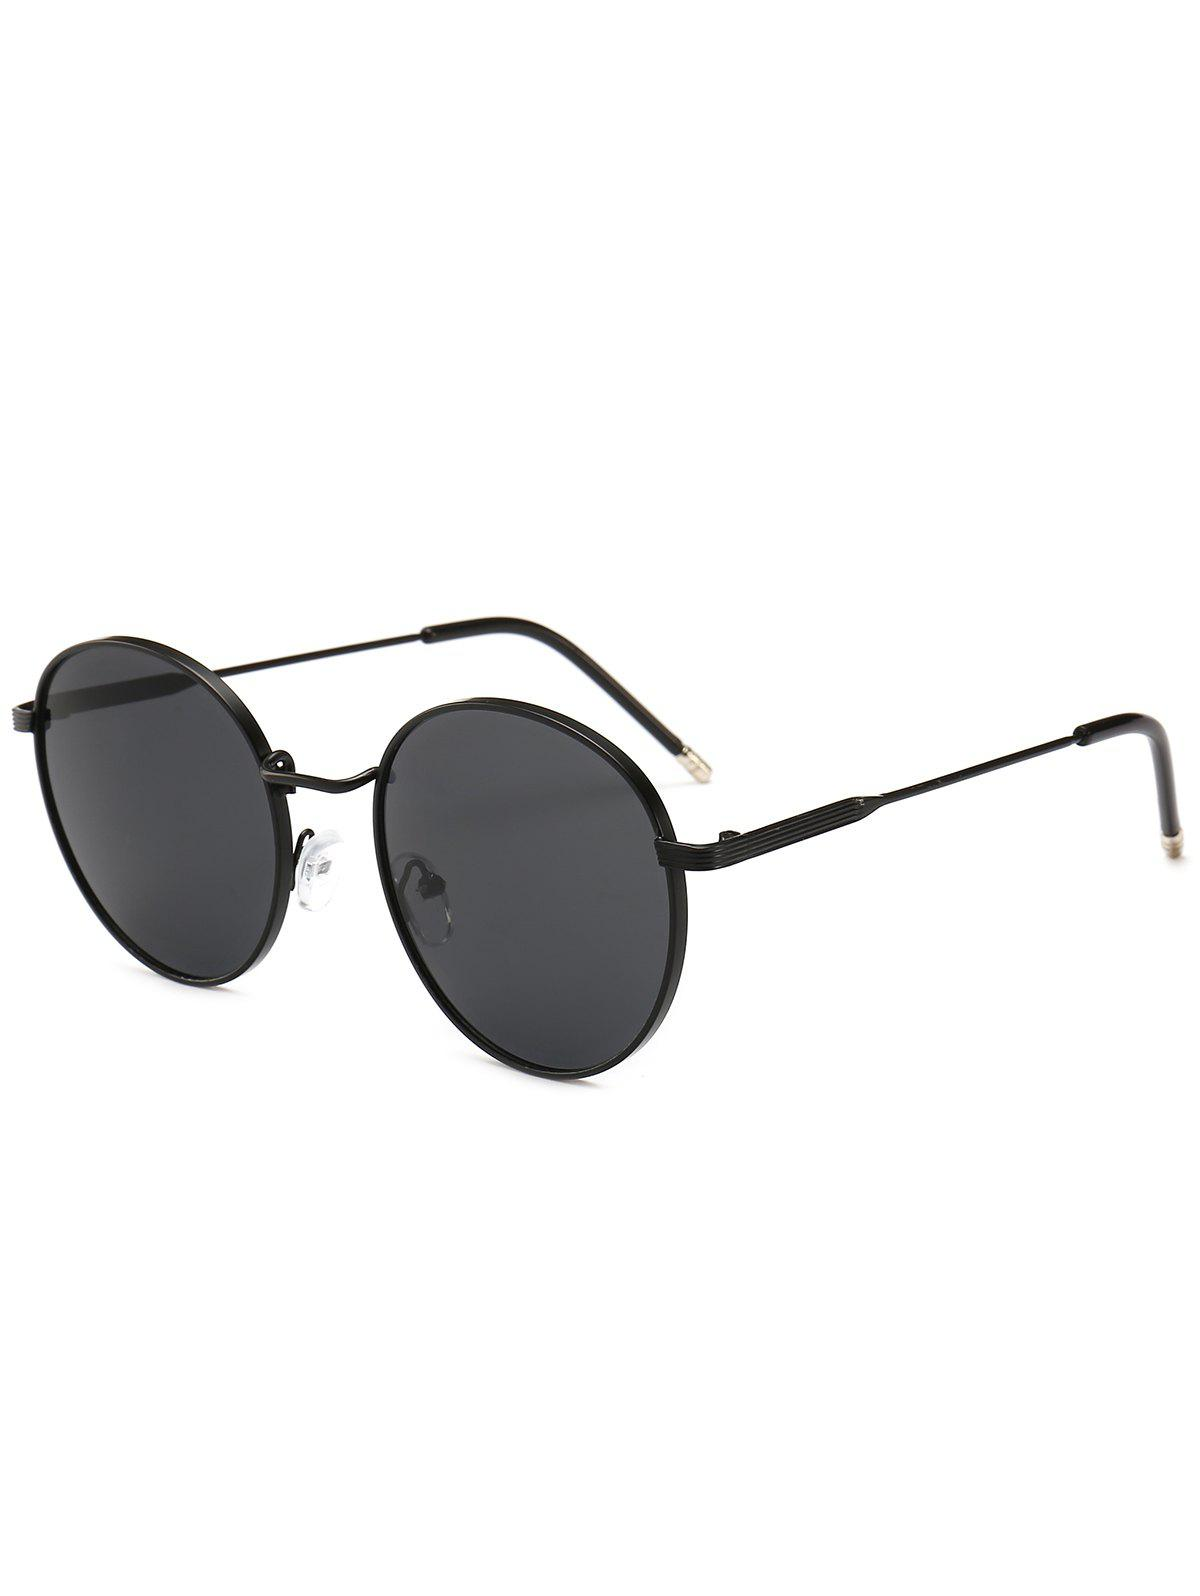 Trendy Stylish Metal Frame Round Sunglasses